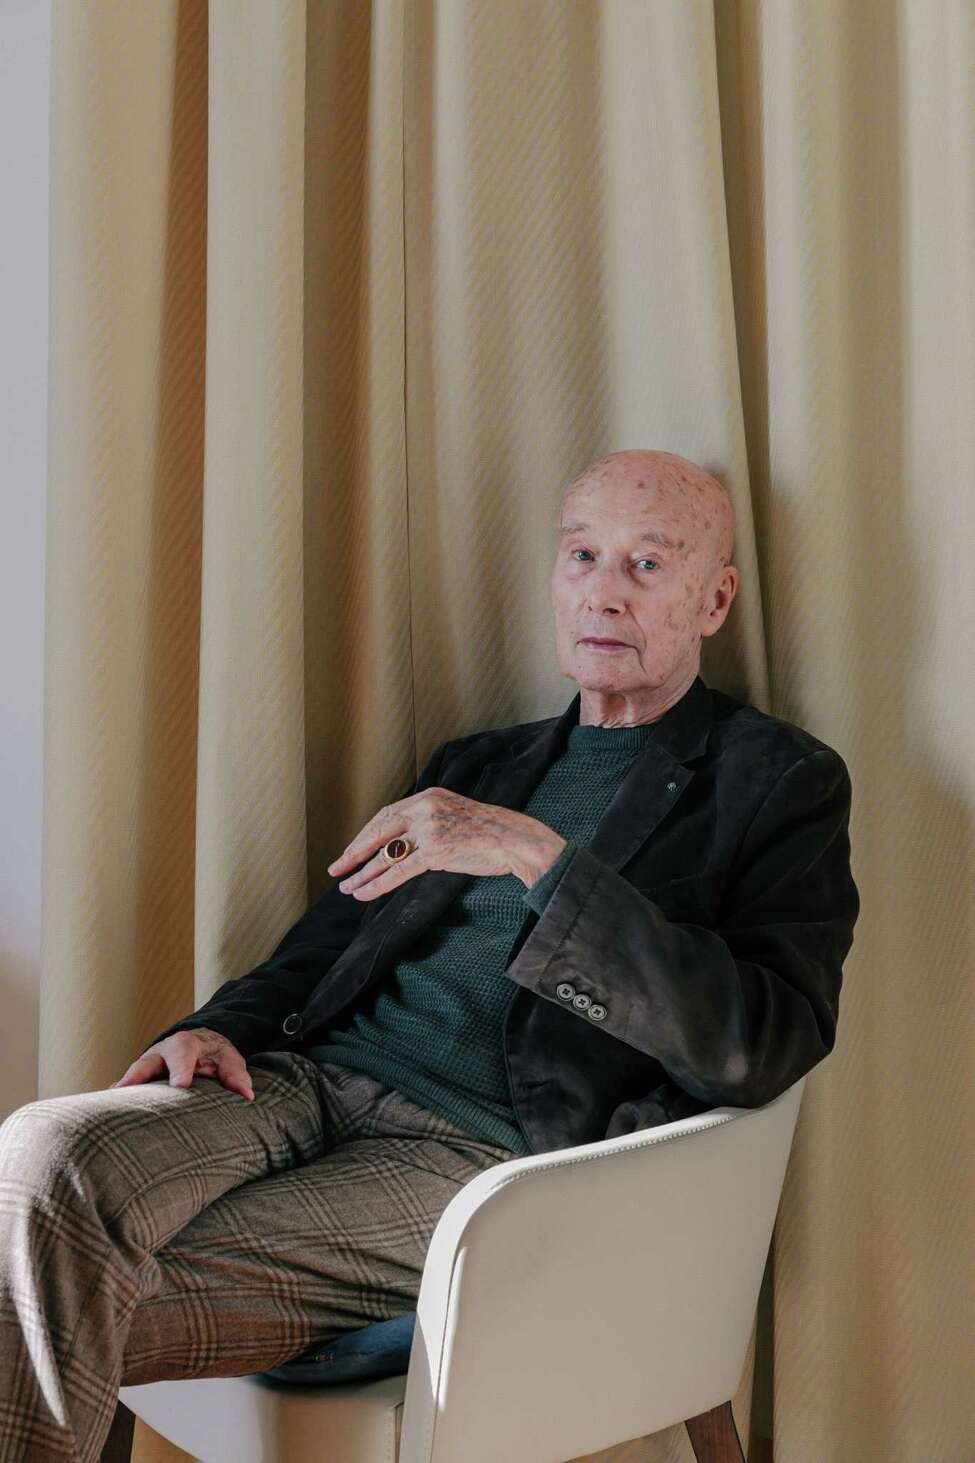 The French writer Gabriel Matzneff in the Italian Riviera on Feb. 1, 2020. Matzneff has been summoned to appear in a Paris court on Wednesday, Feb. 12, accused of actively promoting pedophilia through his books. (Andrea Mantovani/The New York Times)